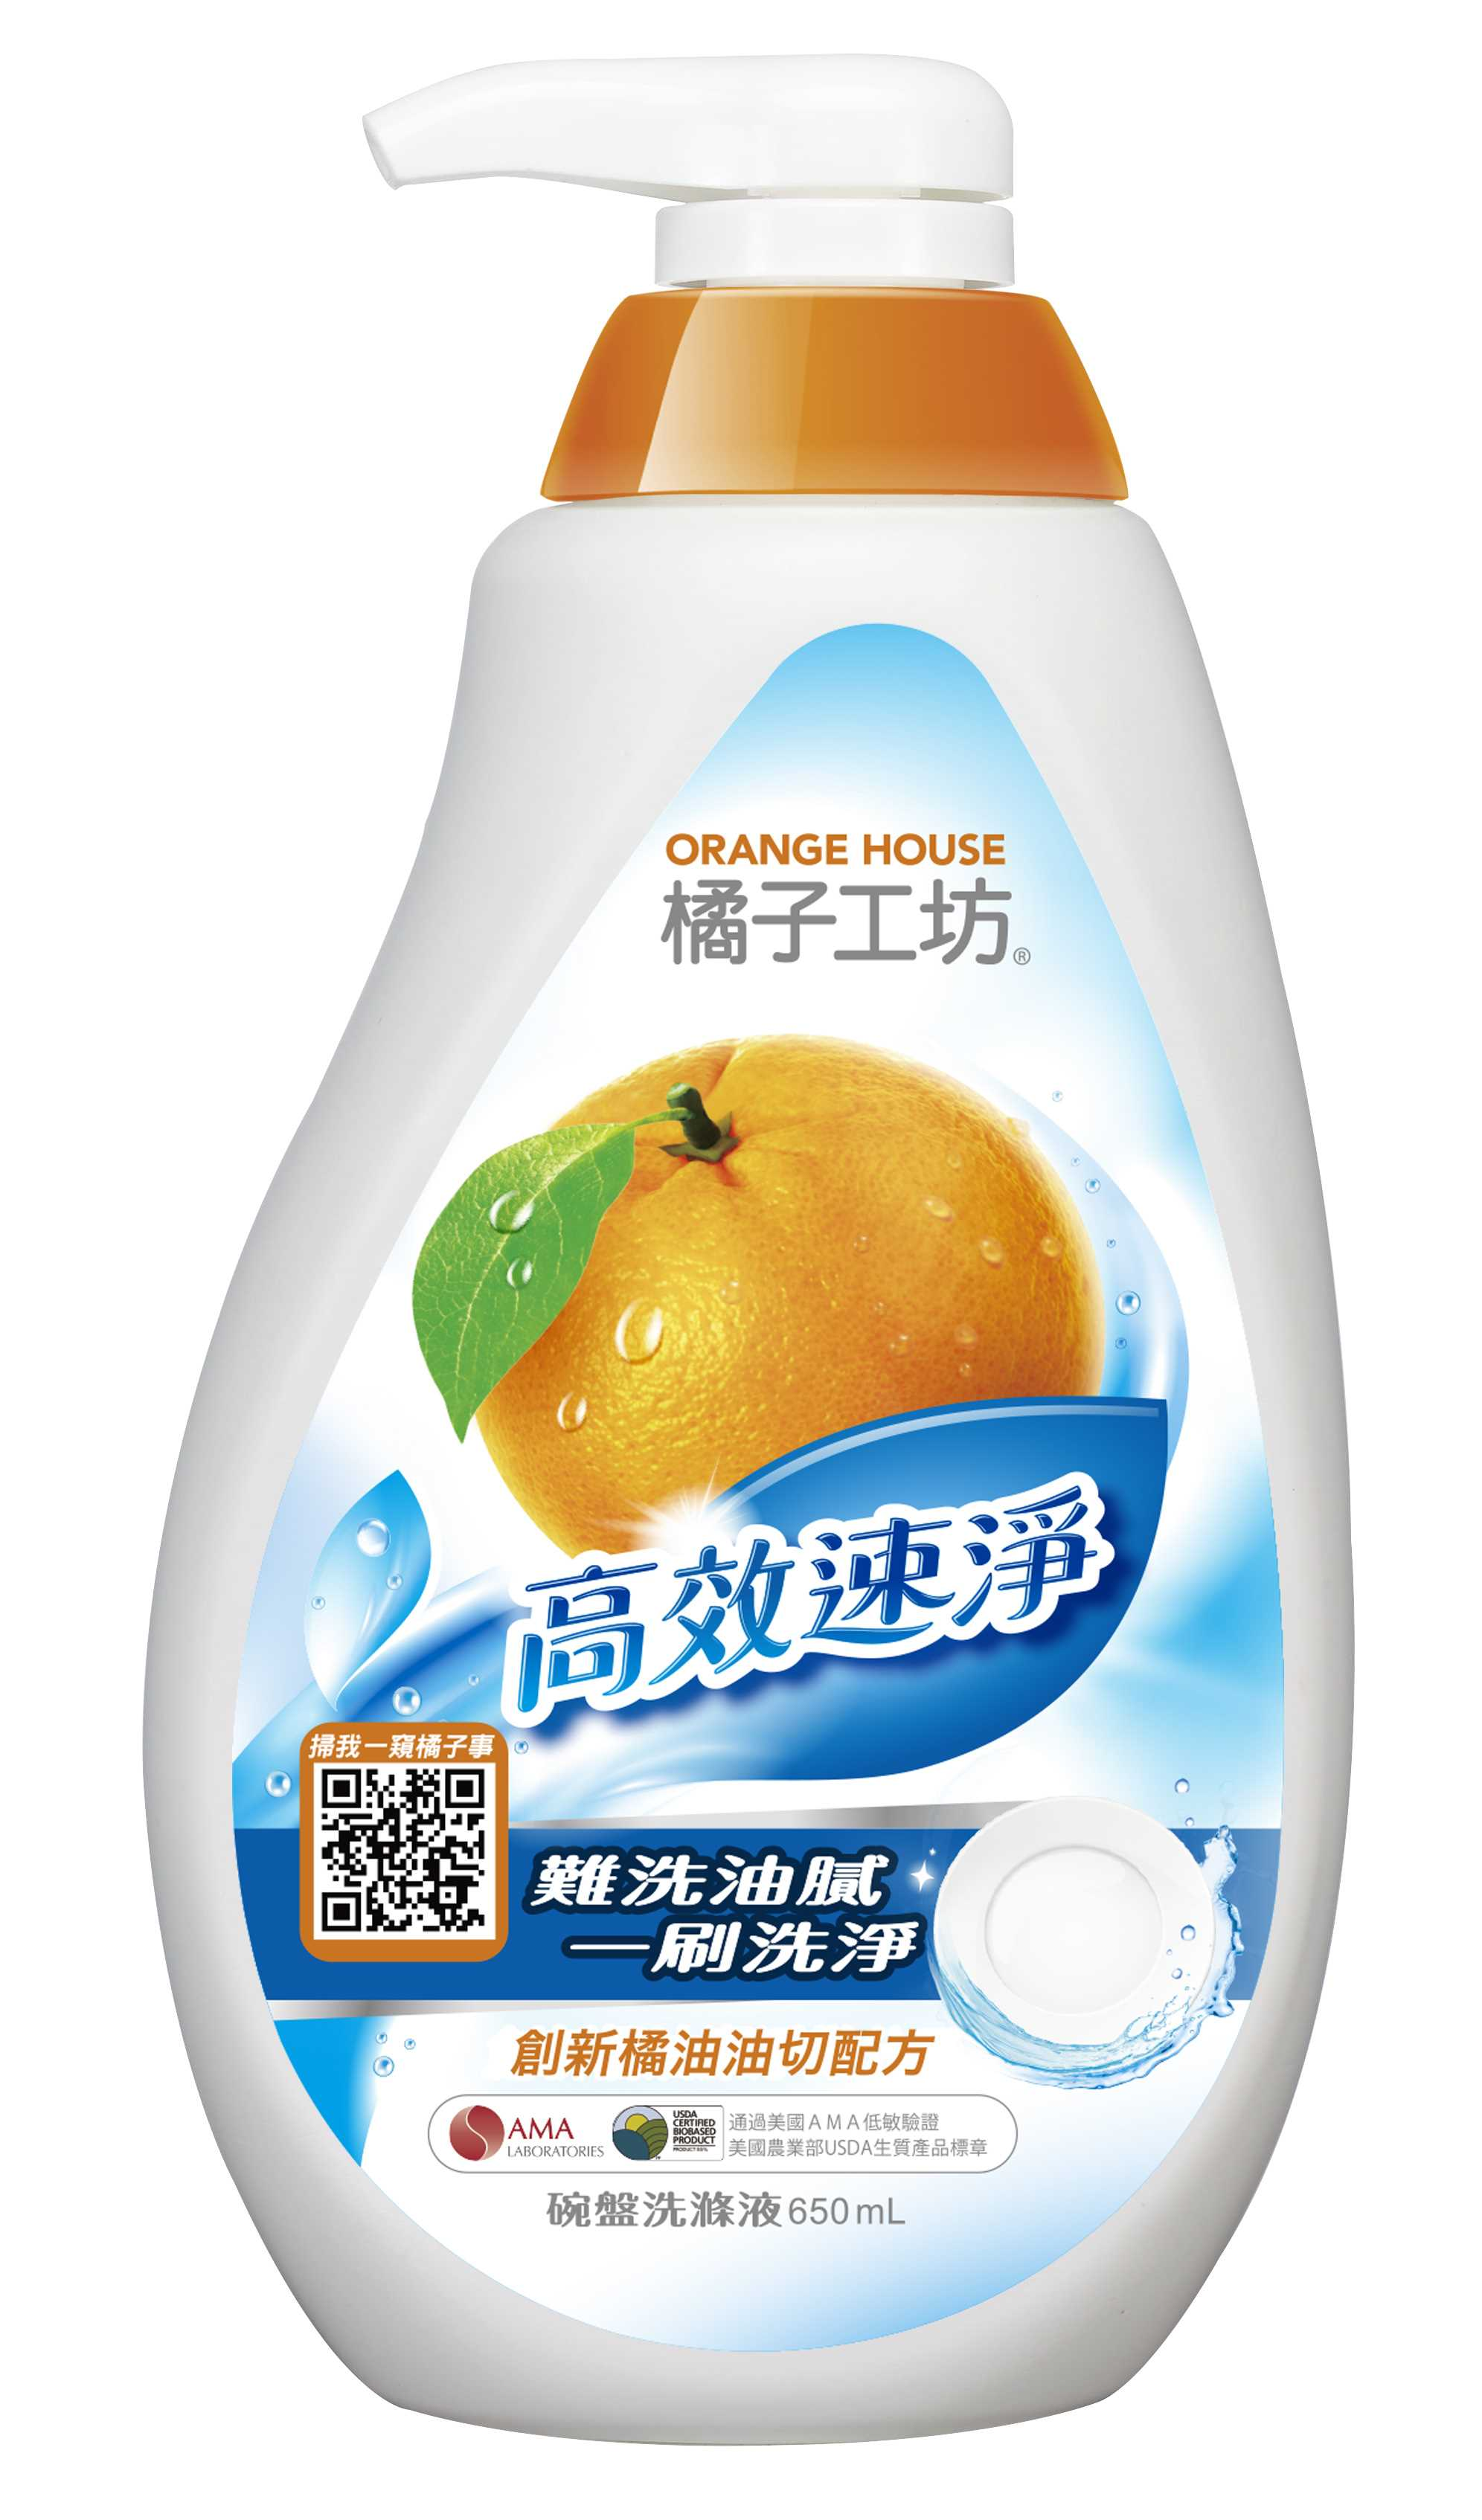 Orange House Nature Dishwashing Liquid - Havey Grease Dissolving 650ml